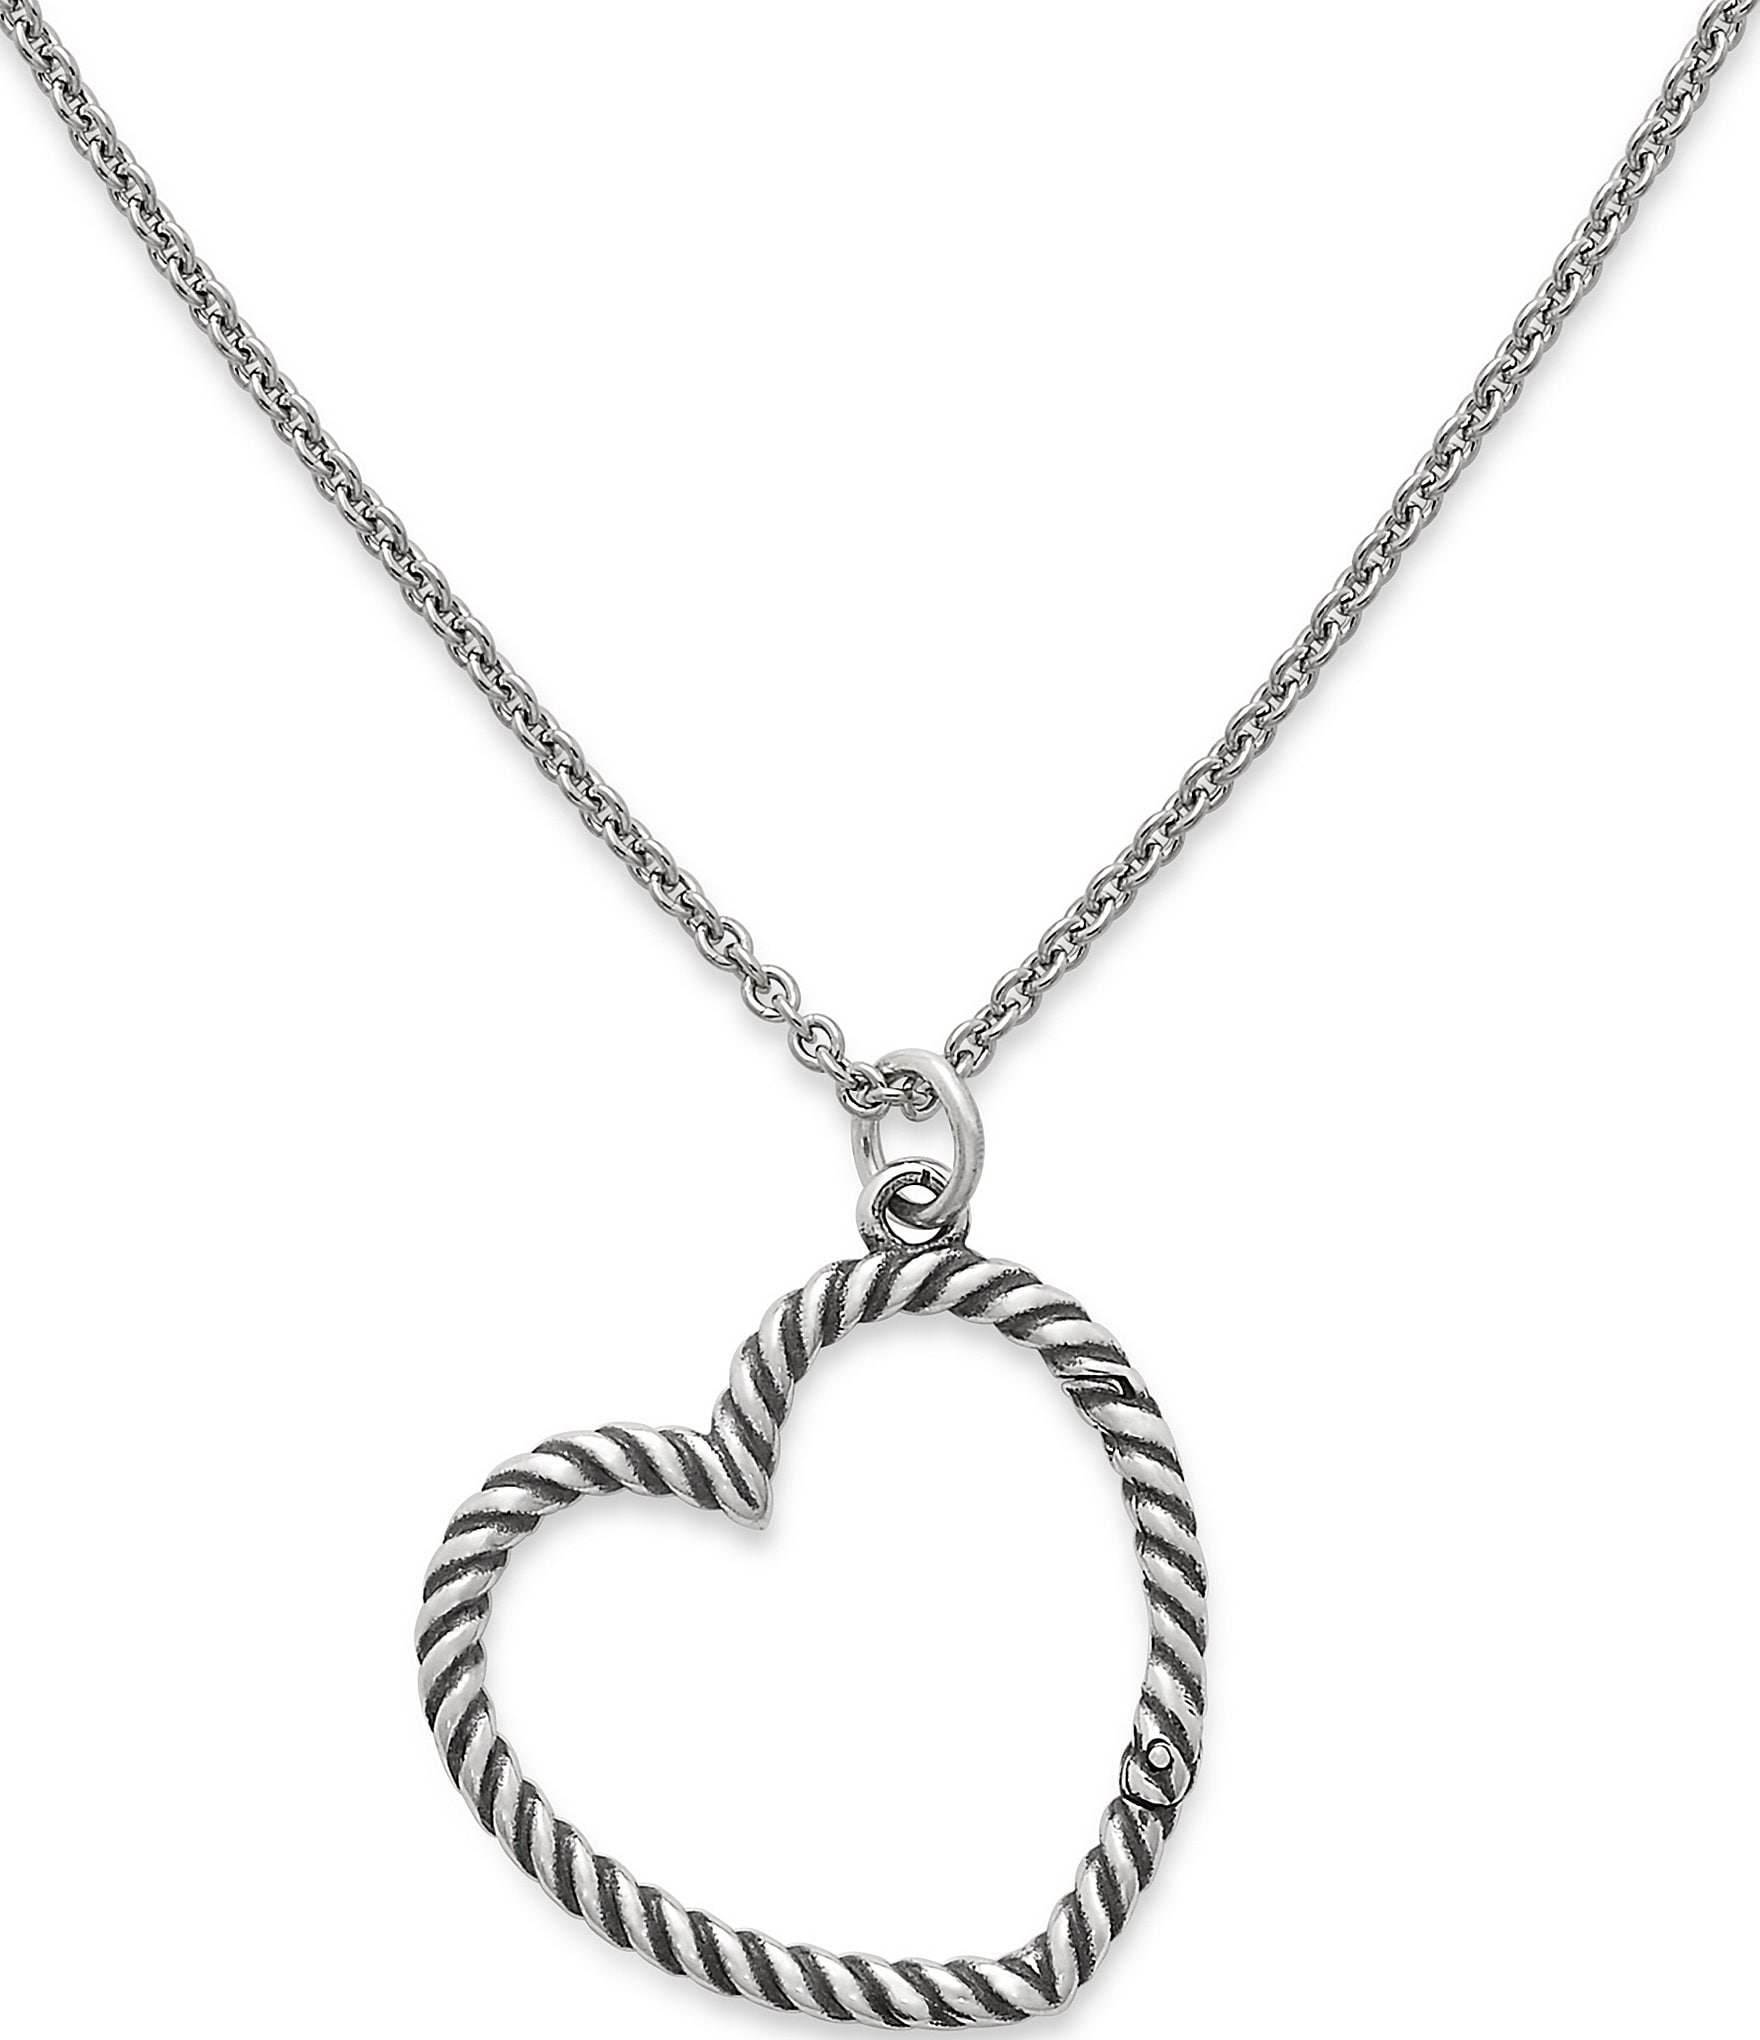 James Avery Changeable Heart Charm Holder Necklace